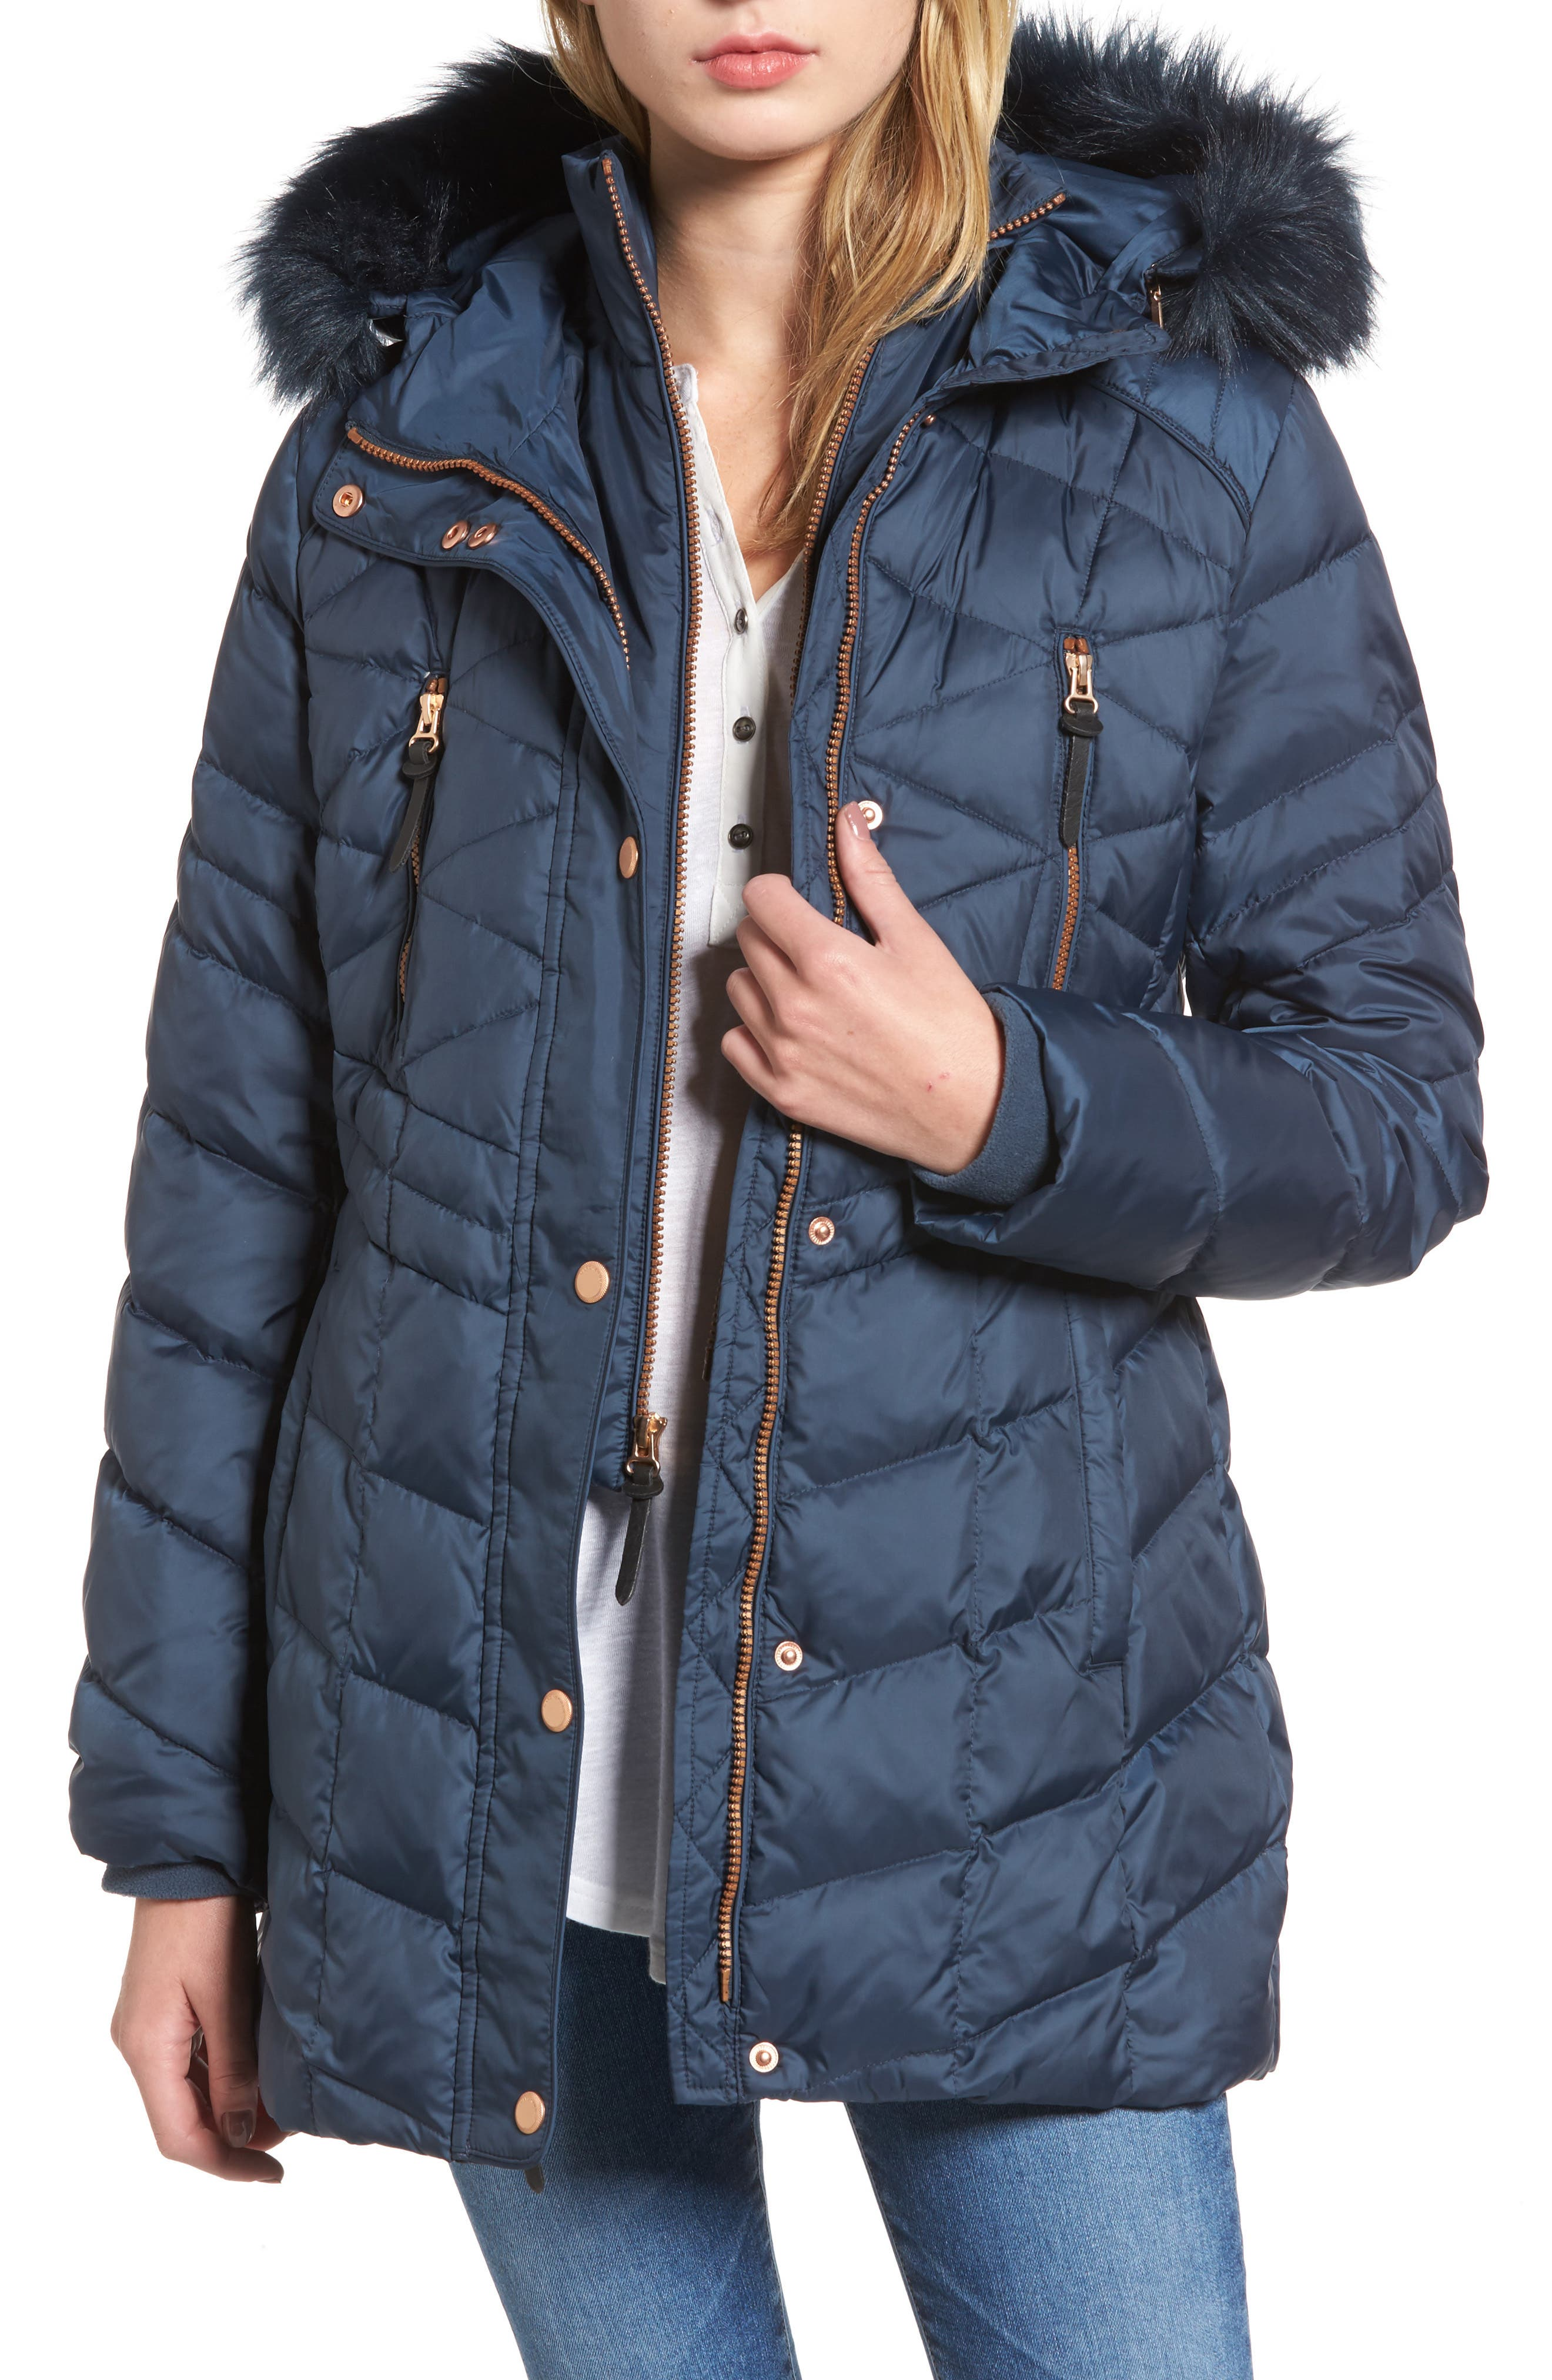 Andrew Marc Marley 30 Coat with Detachable Faux Fur